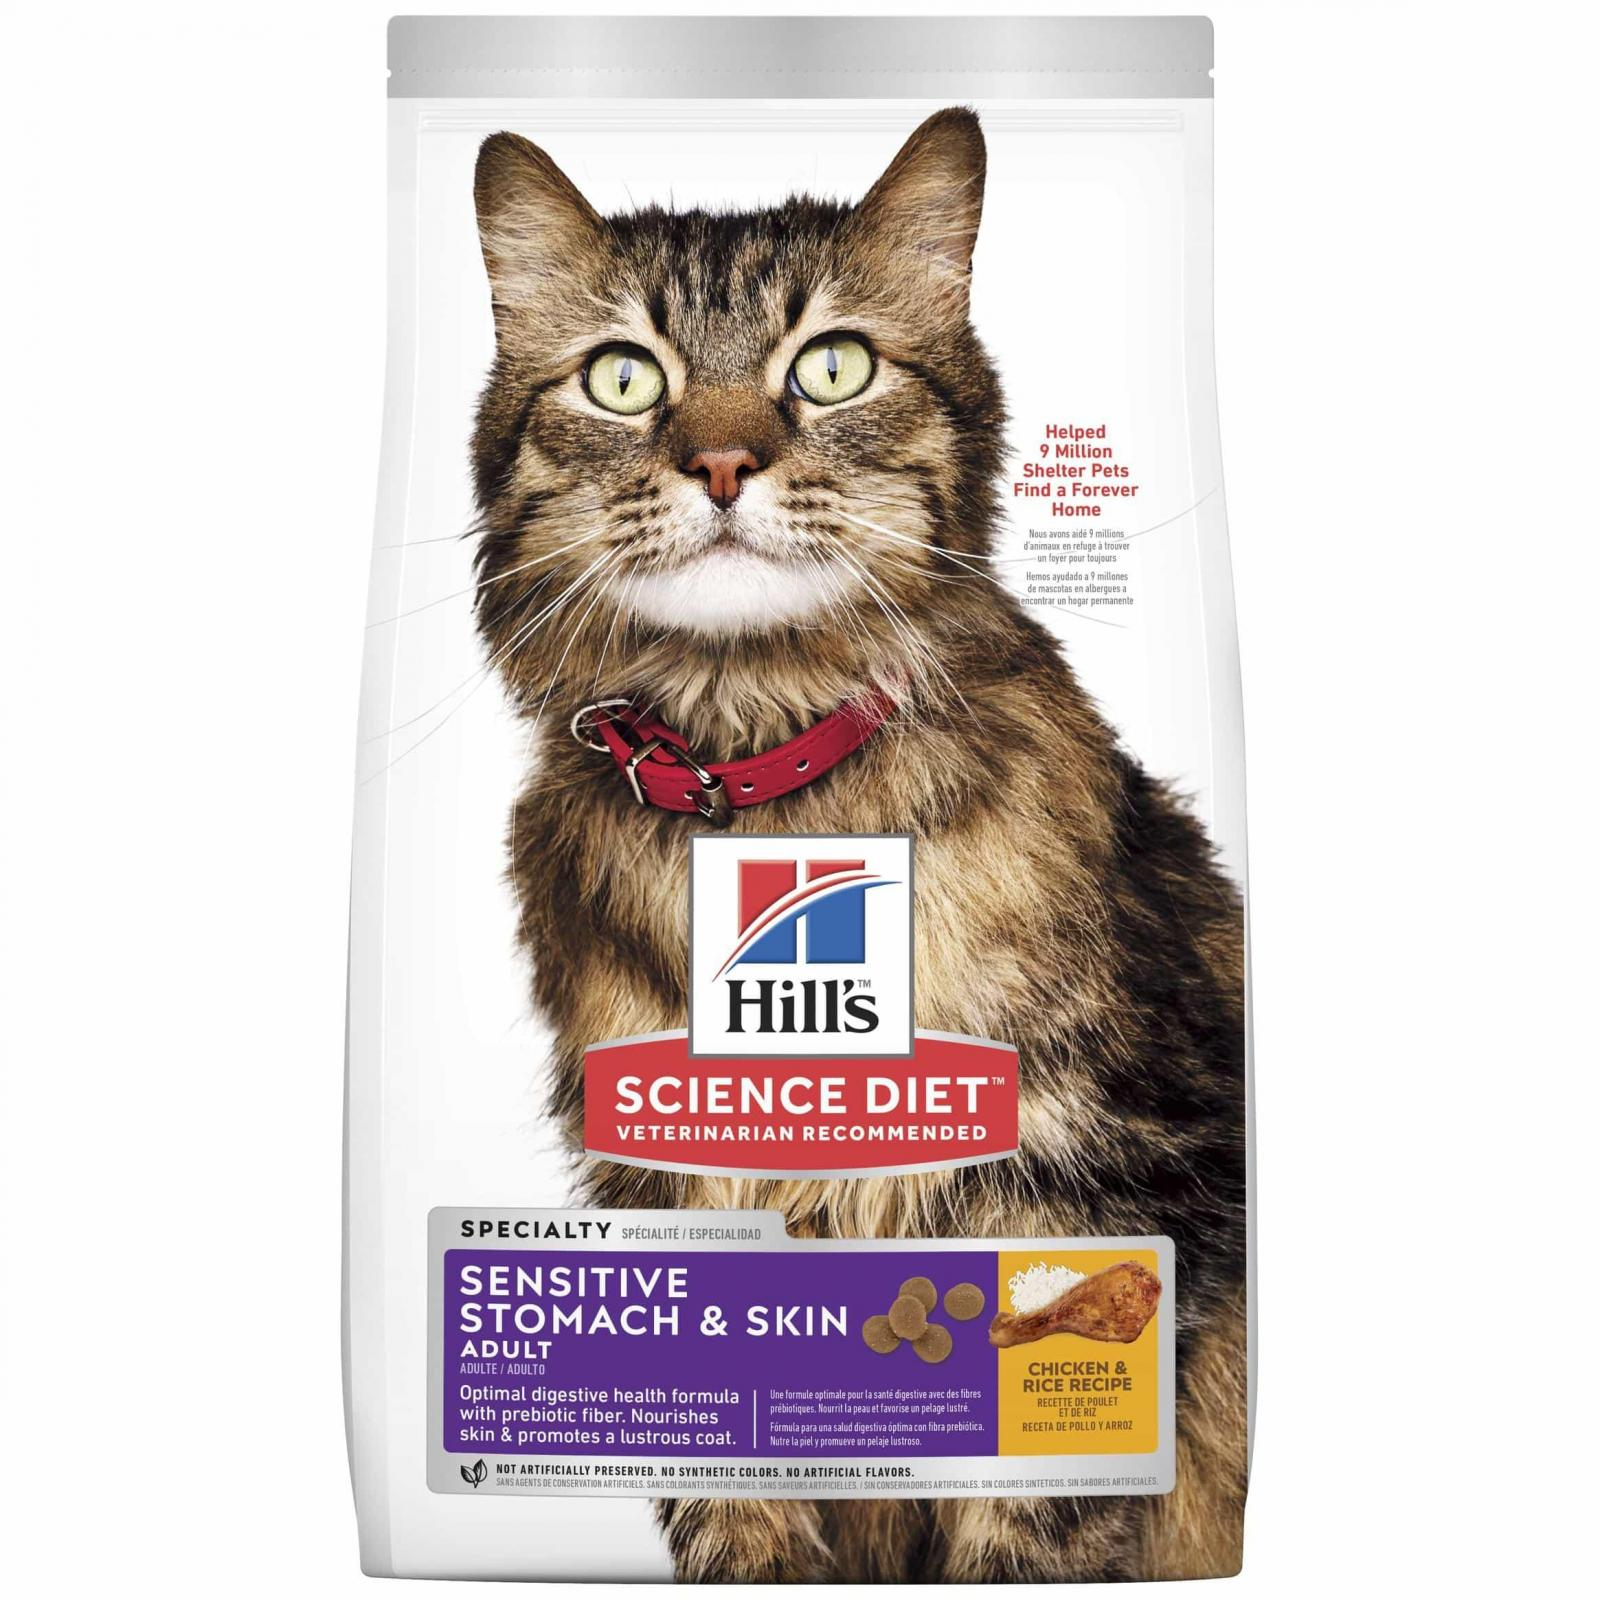 Hill's Hill's Science Diet Adult Sensitive Stomach & Skin Dry Cat Food